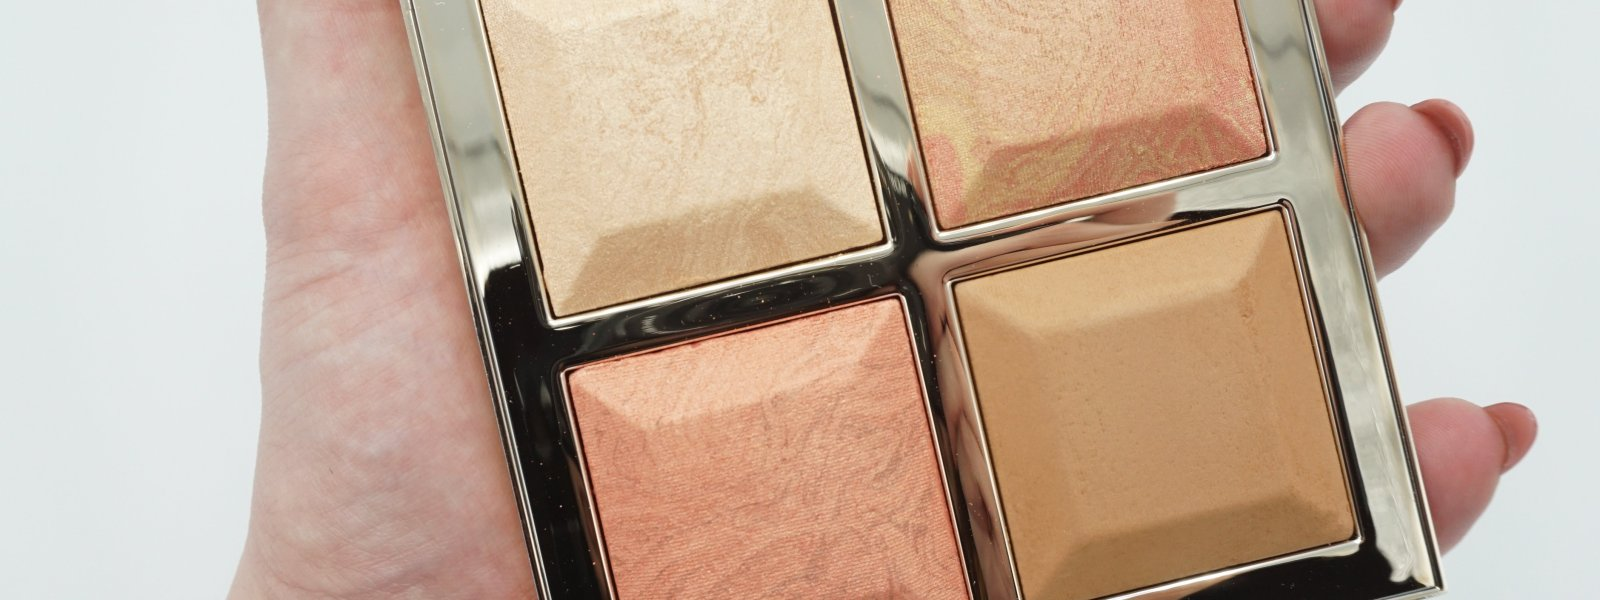 BECCA Cosmetics Khloé Kardashian x Malika Haqq collection | Review